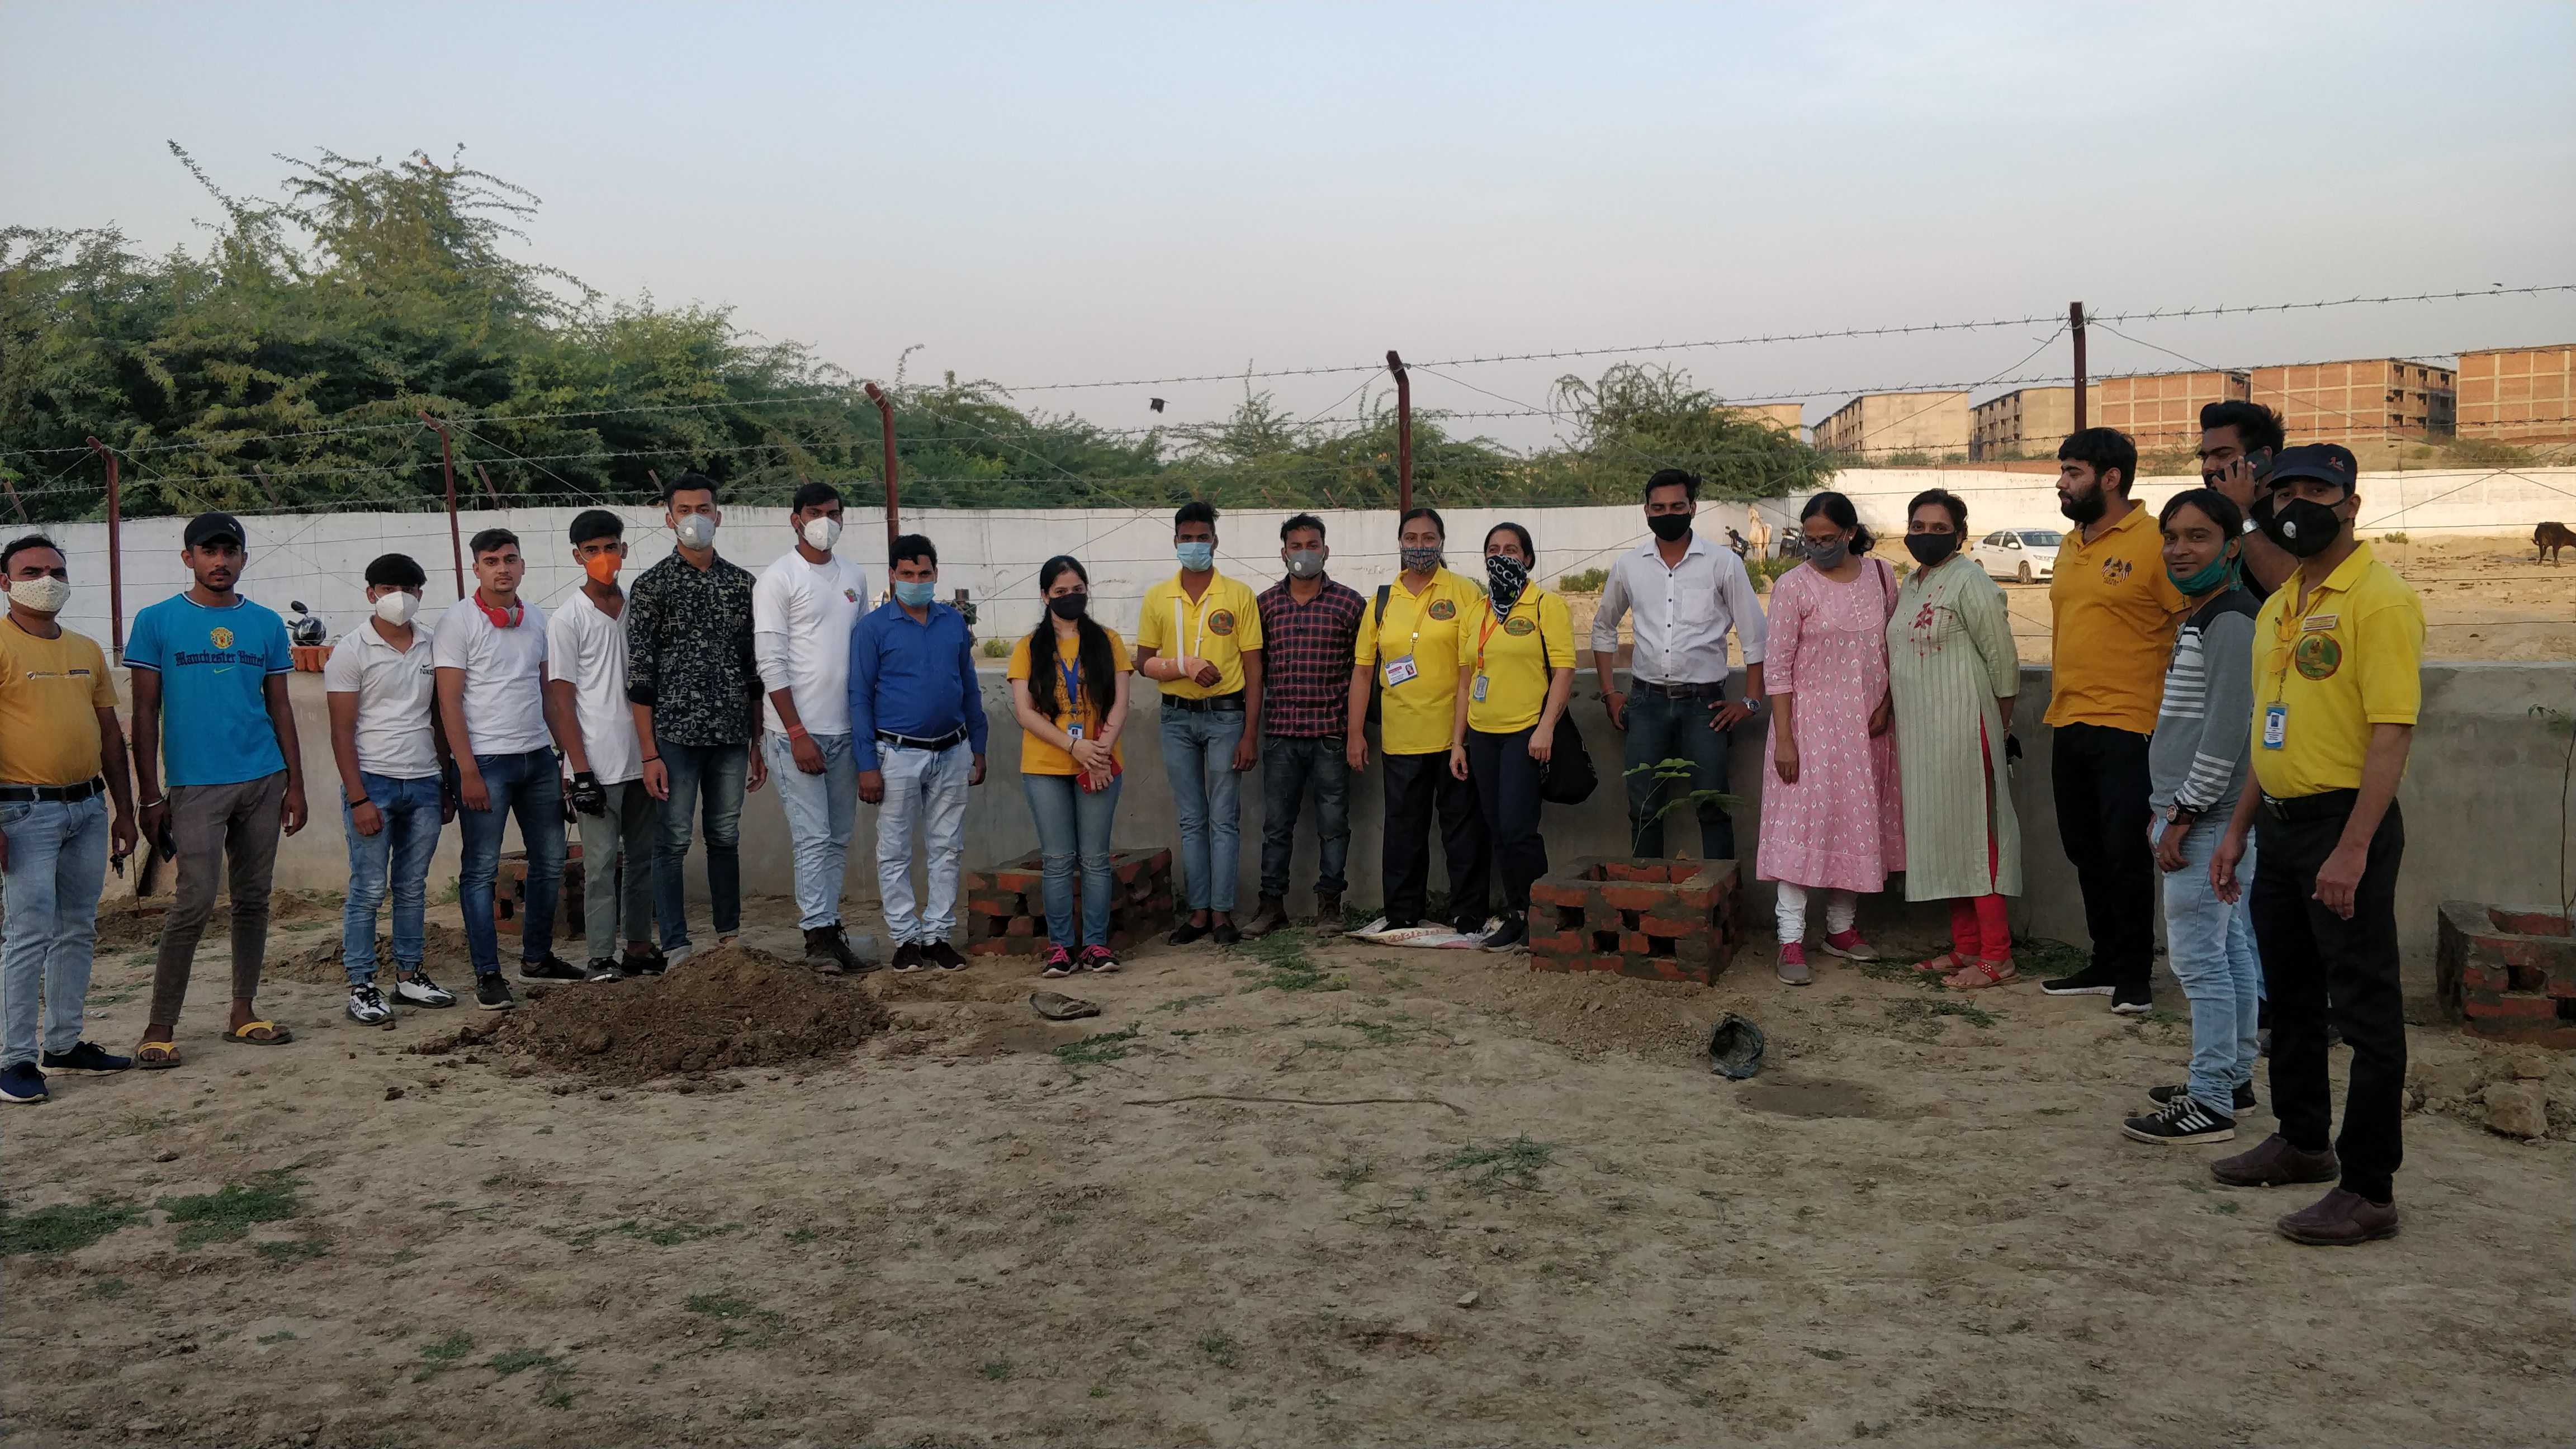 "We had a plantation drive at the new shelter premises on 11th October. Dr. Meeta Kulshreshtha of the Unfold Foundation was kind enough to donate the trees and oversee the plantation. the team from Ek Kartavya joined us for the ""shram daan""."